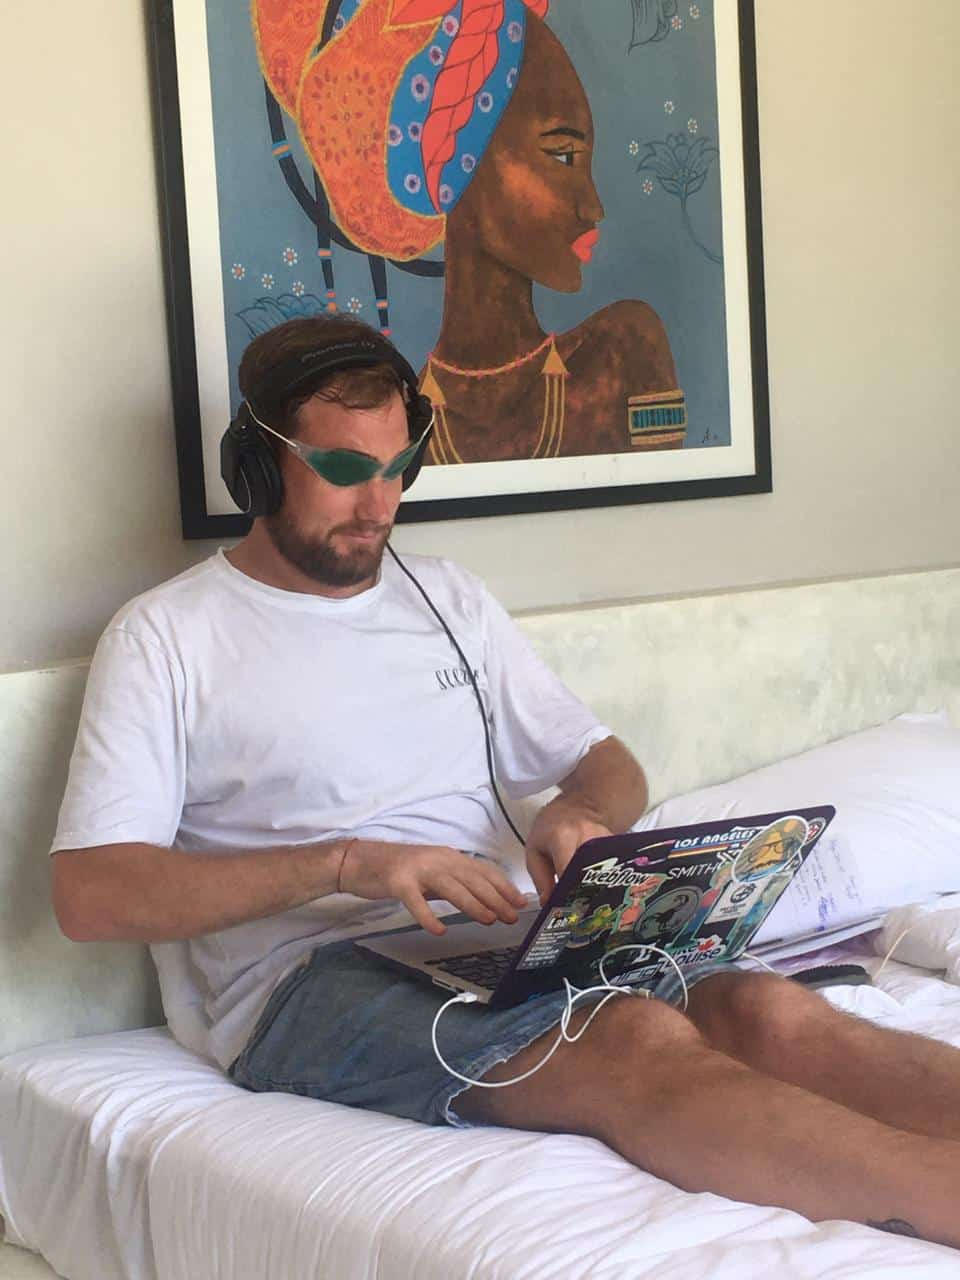 Rob Lewis working from home.